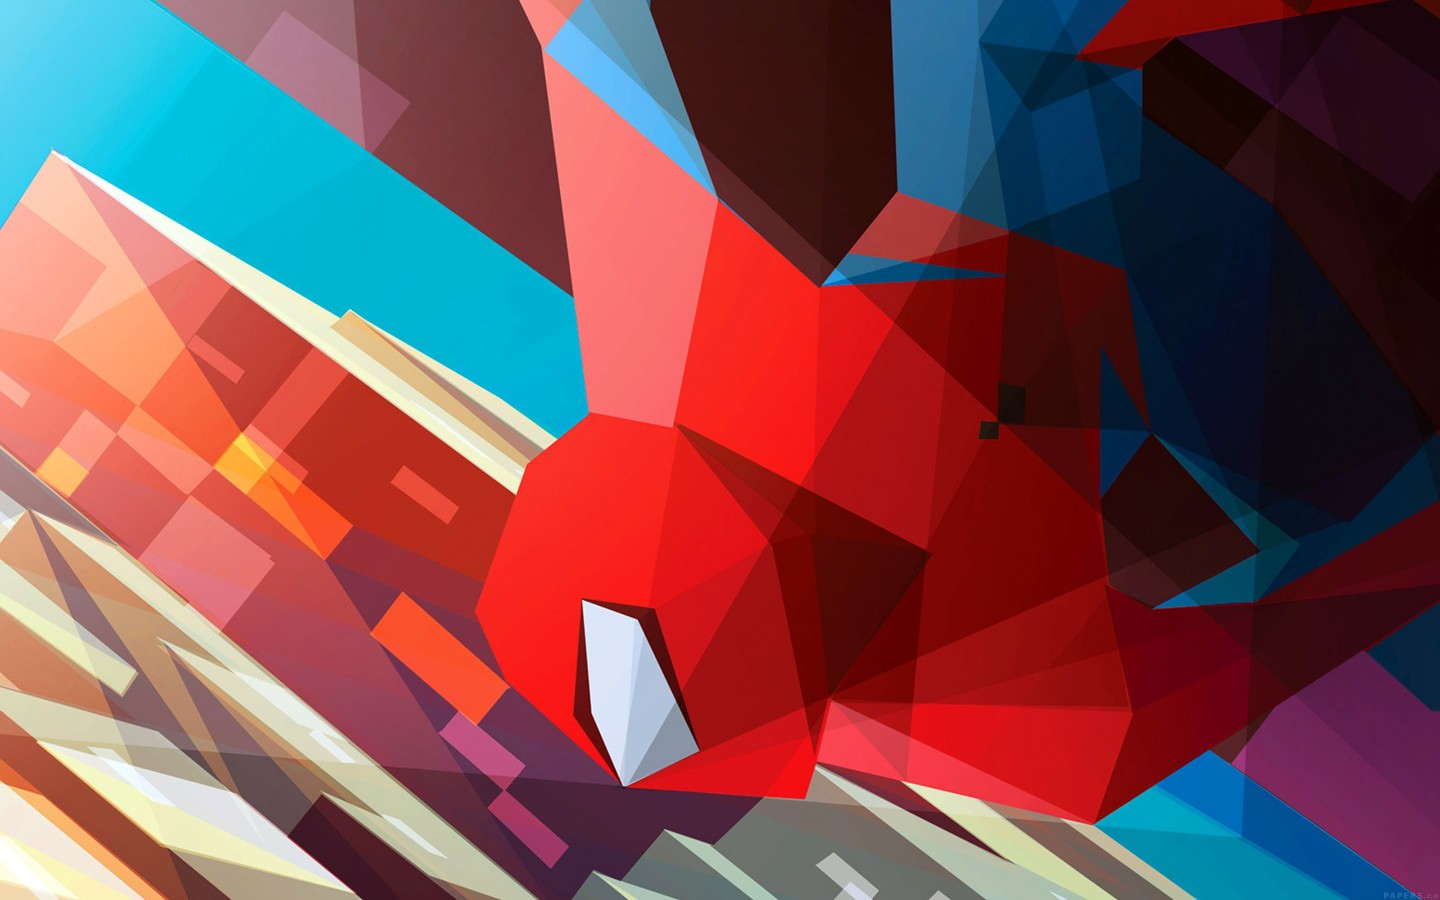 Spiderman Low Poly Illustration Wallpaper for Desktop 1440x900